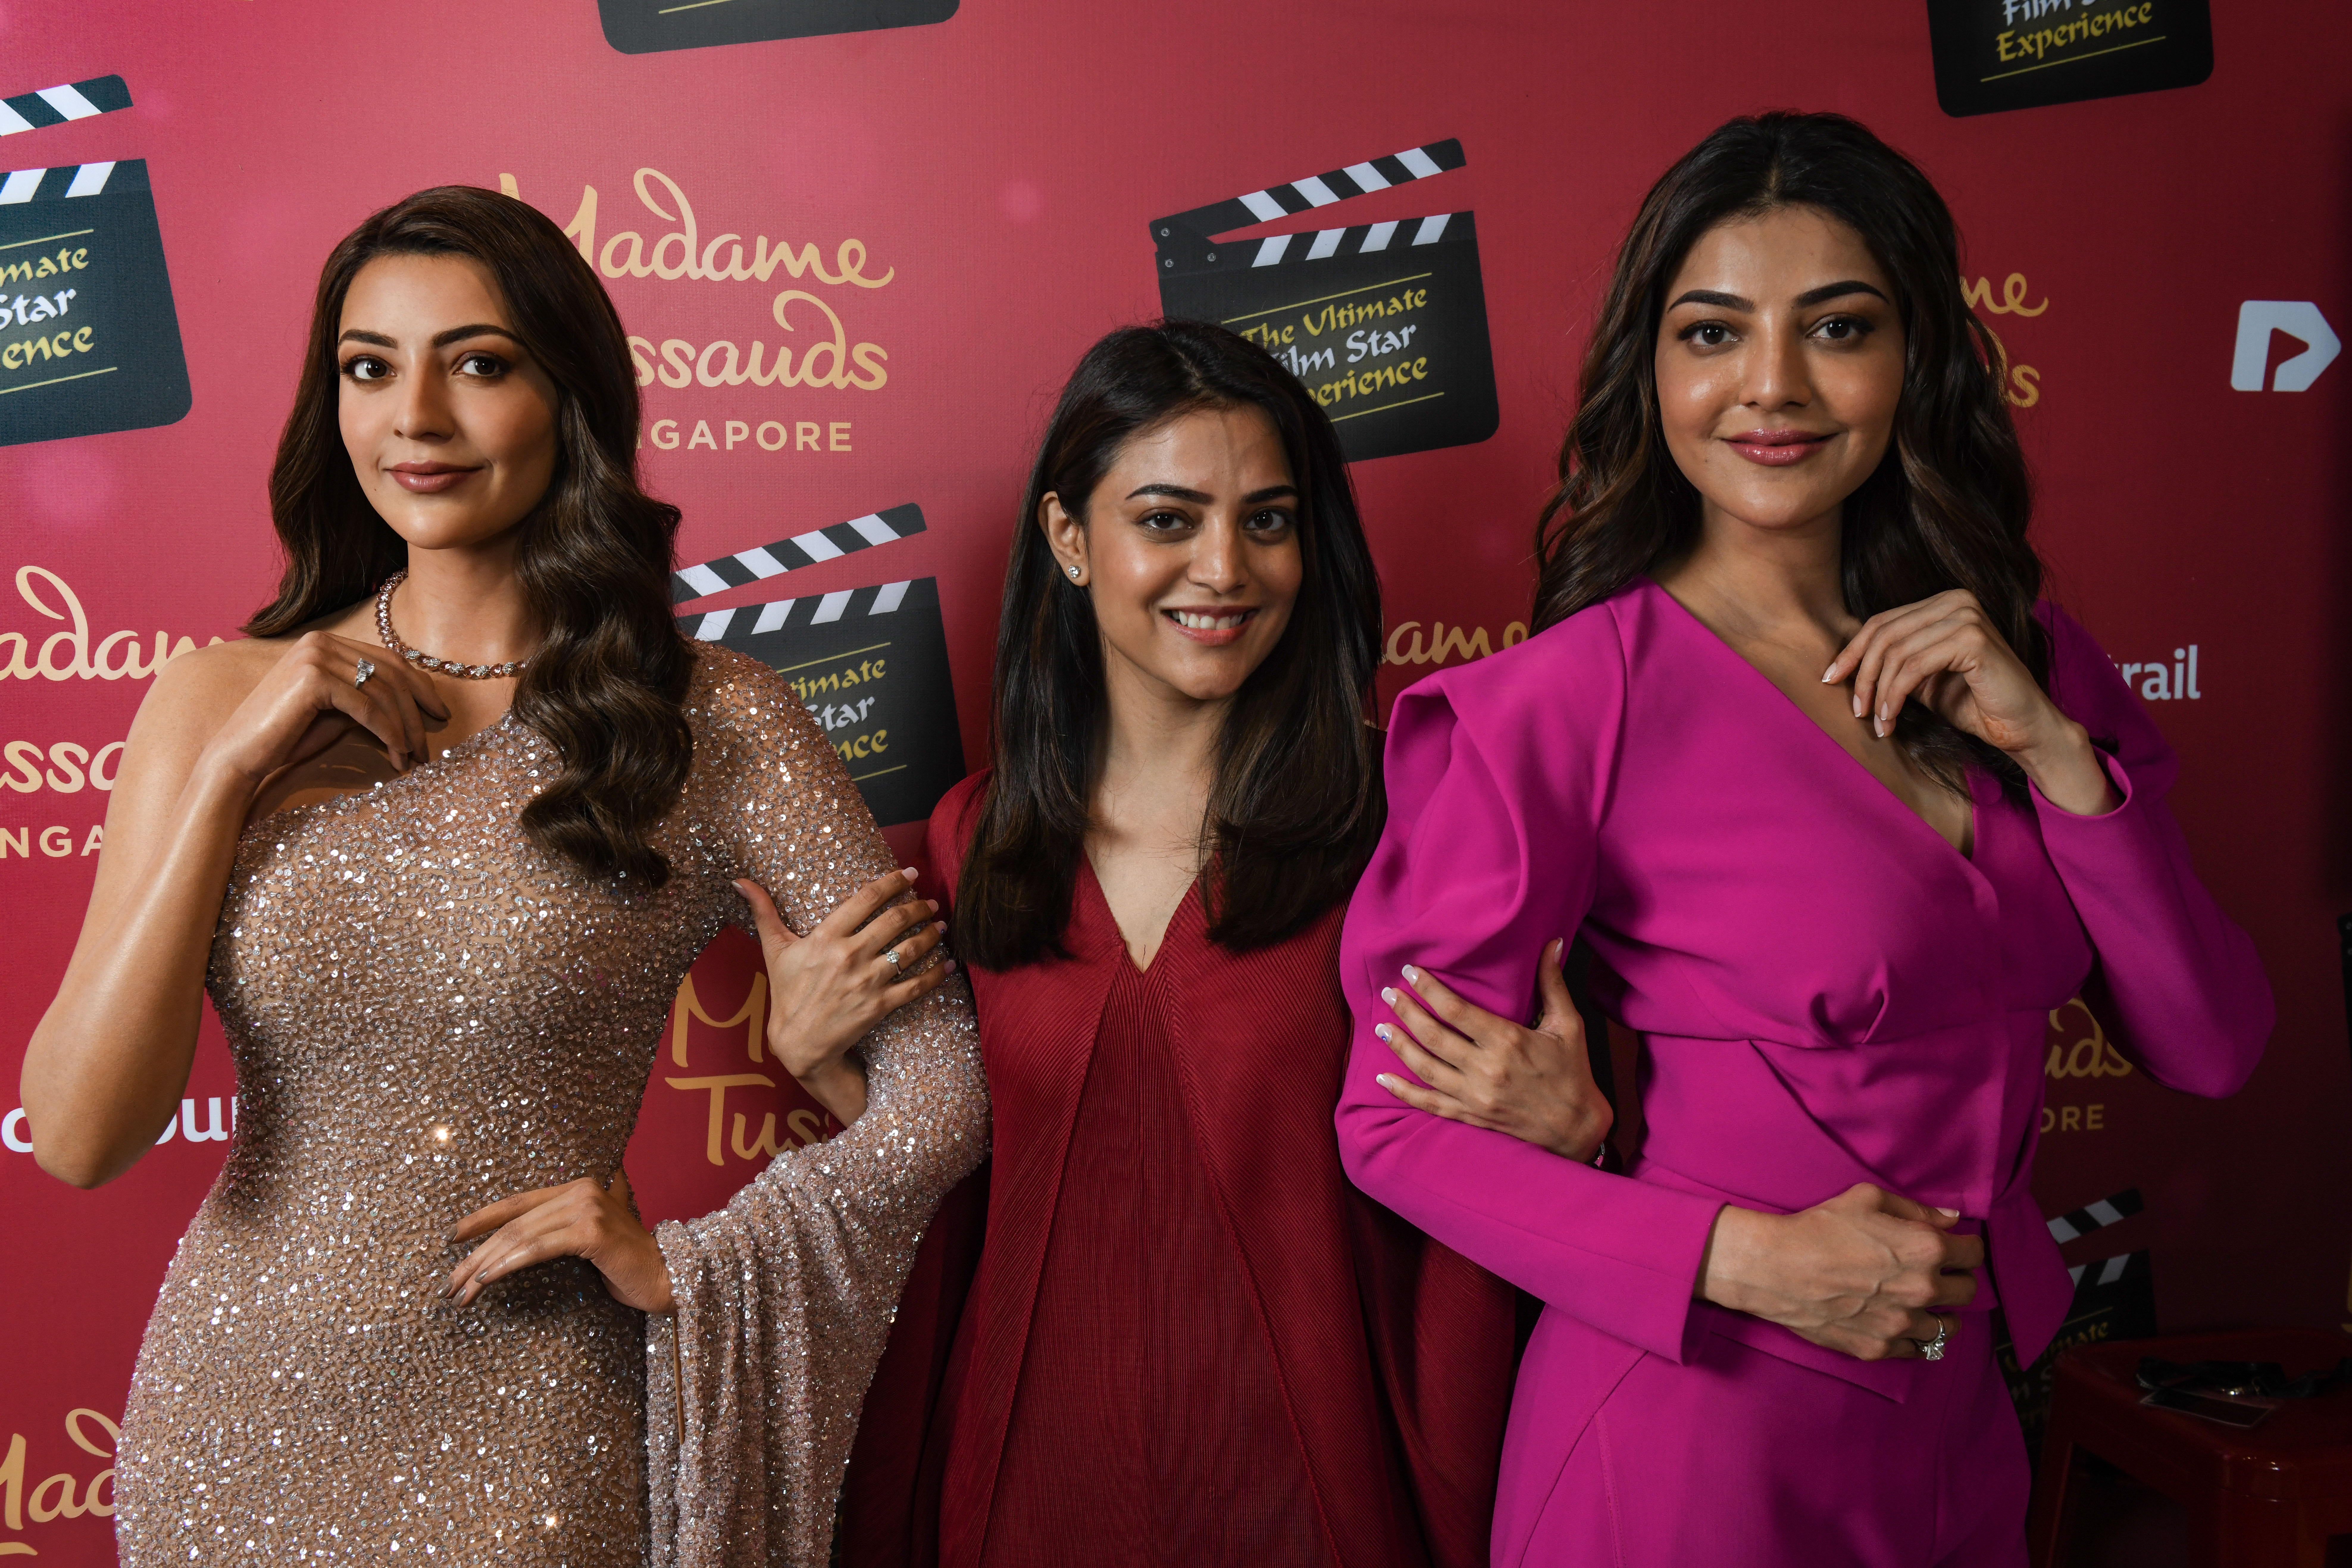 Nisha Aggarwal, Kajal Aggarwal's pretty sister who has herself acted in Tamil, Telugu andMalayalam films, posing with Kajal and her wax figure at Madame Tussauds Singapore Photo Courtesy: Madame Tussauds Singapore